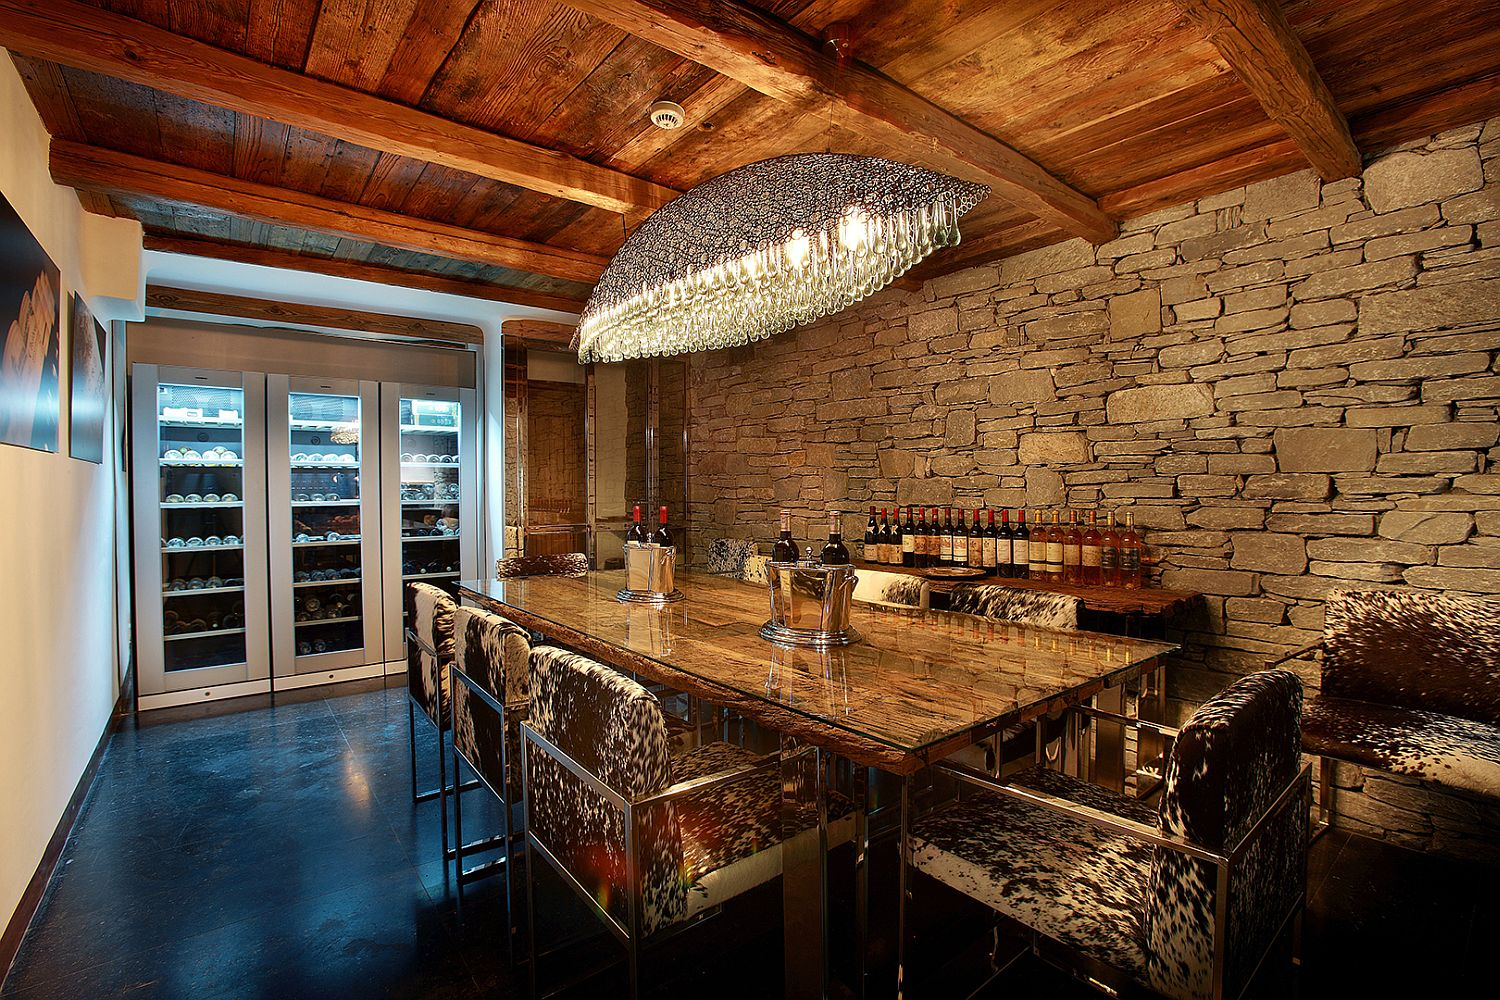 Stone walls of the wine tasting area